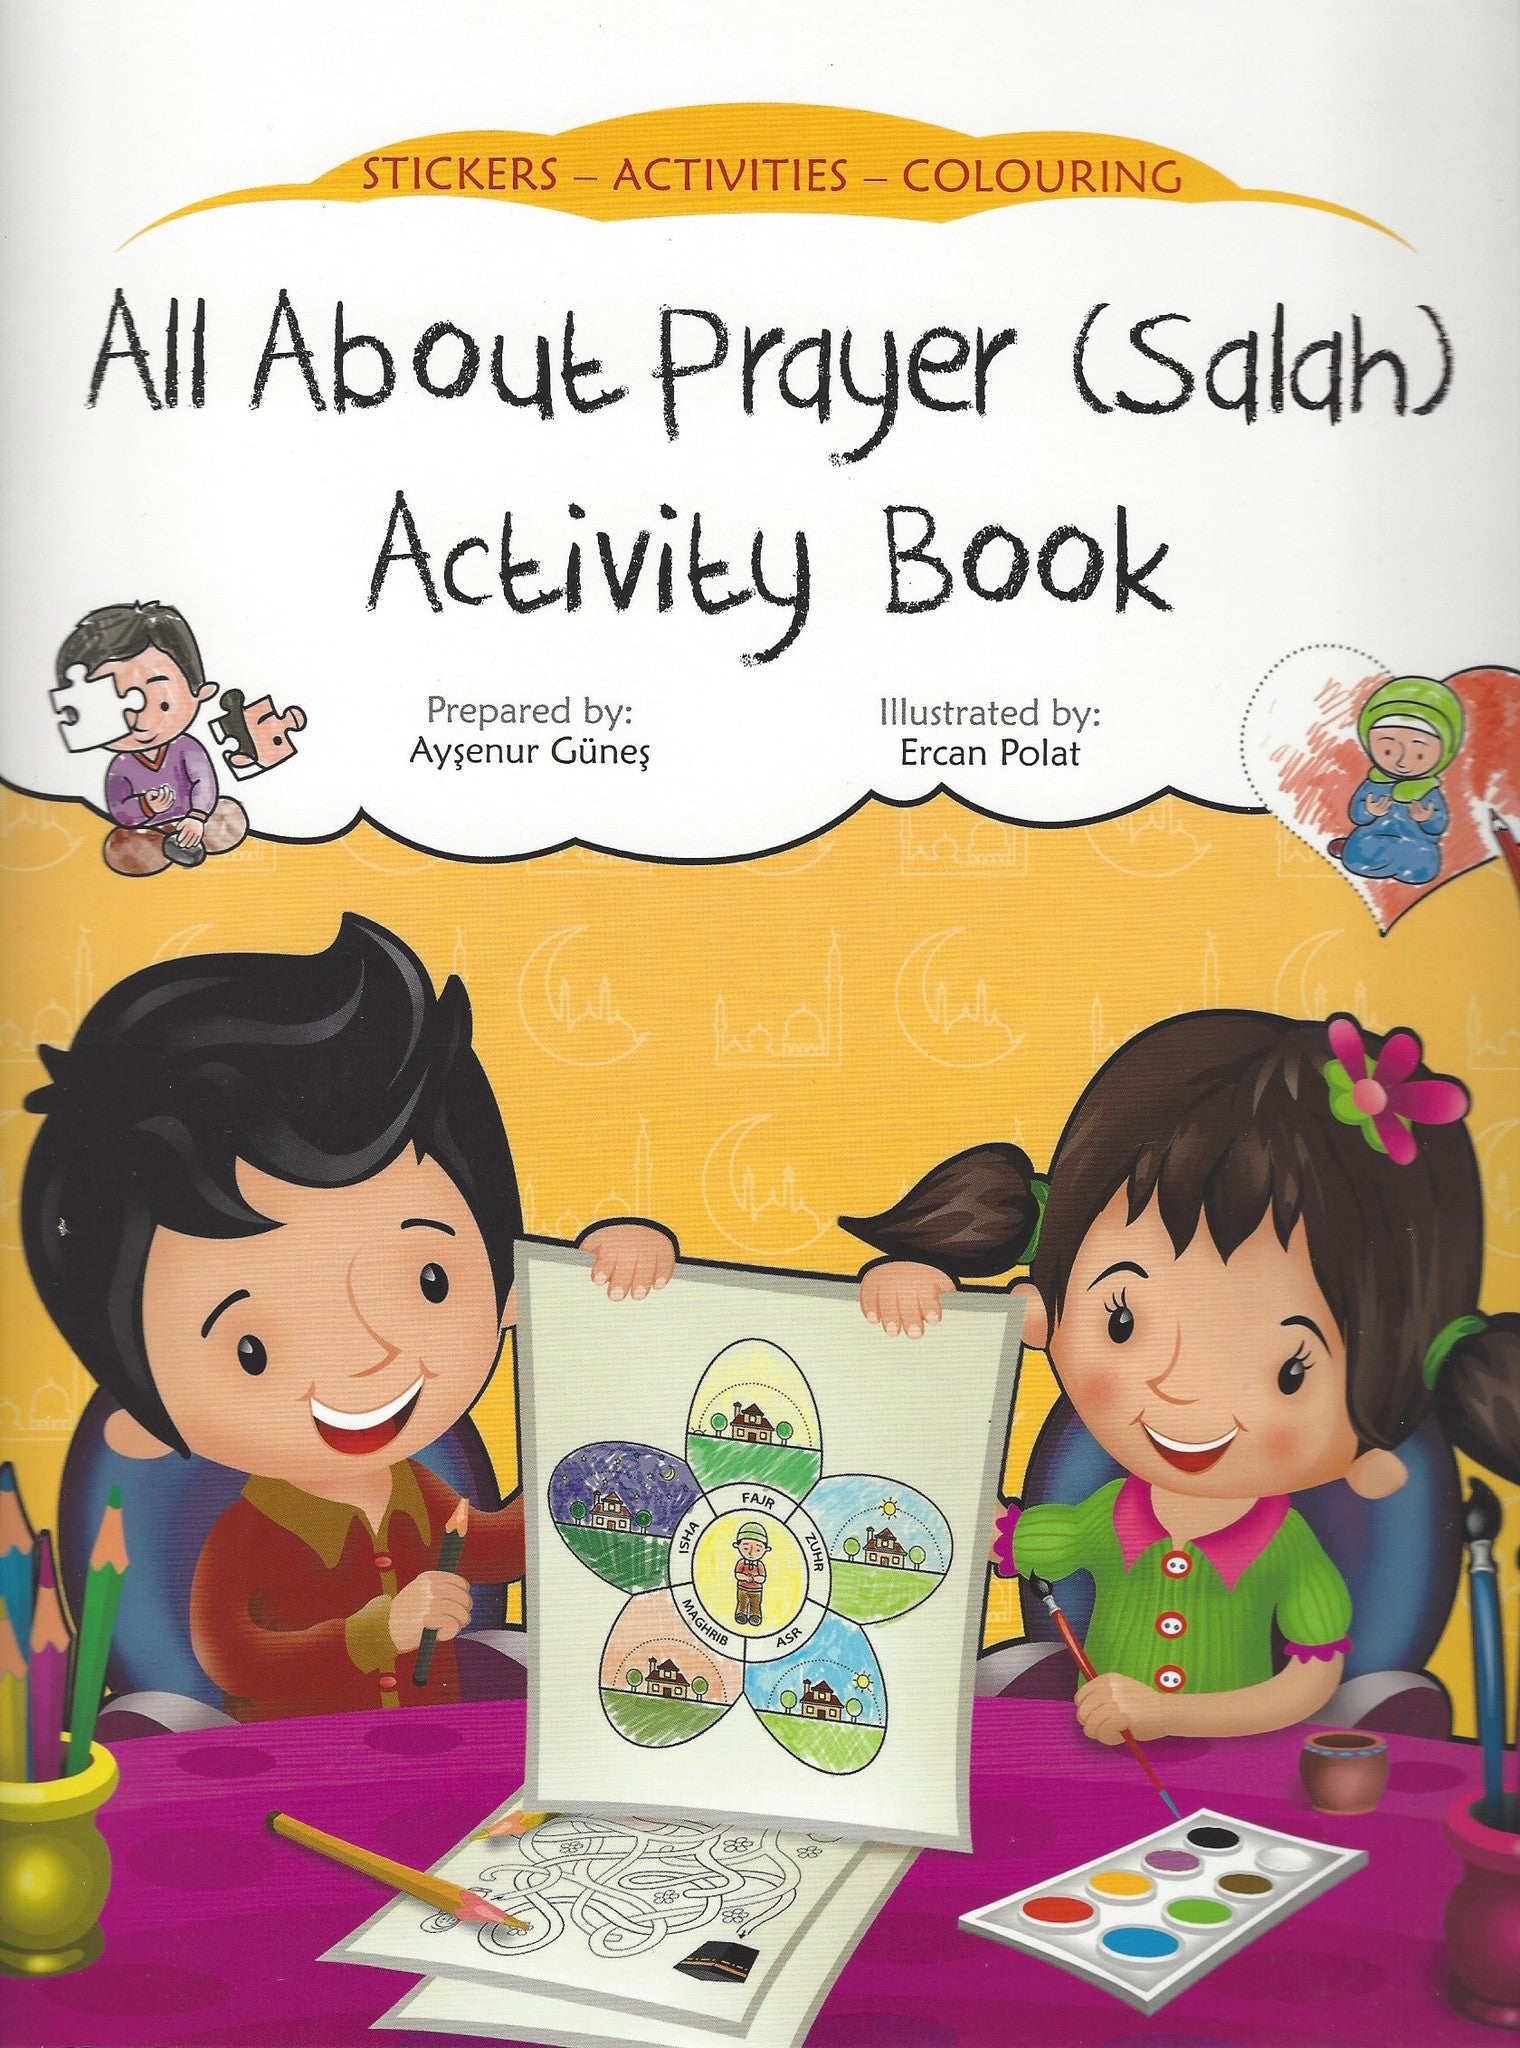 All About Prayer (Salah) Activity Book , Activity Book - Daybreak Press Global Bookshop, Daybreak Press Global Bookshop